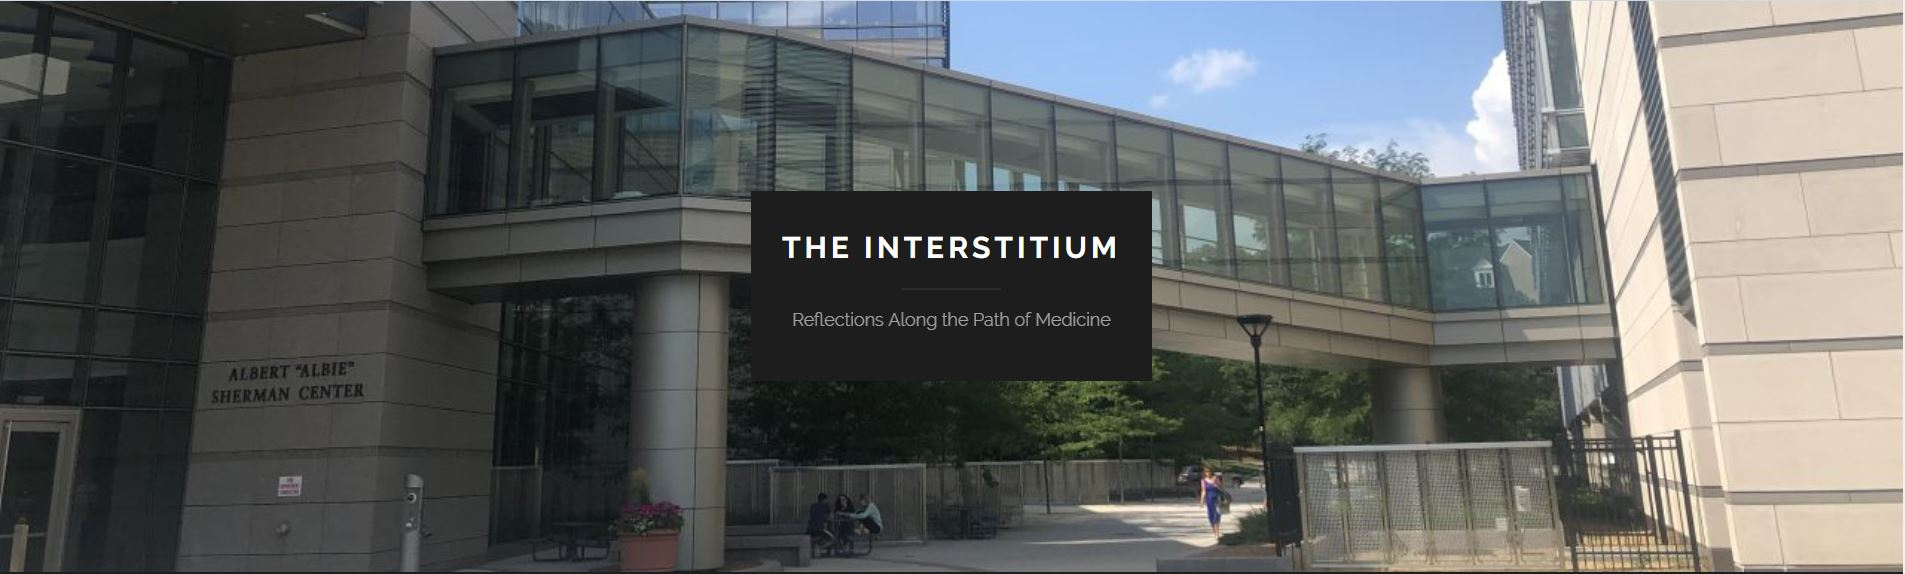 The Interstitium: Reflections Along the Path of Medicine